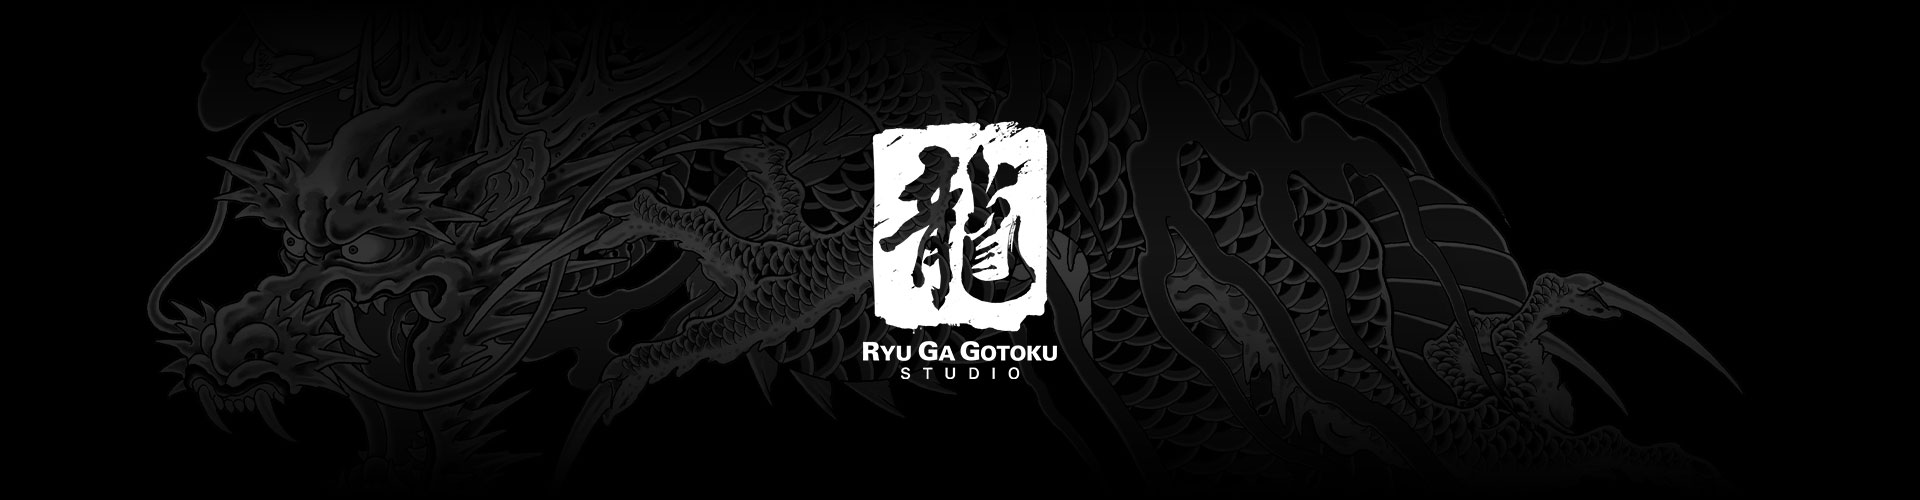 Ryu Ga Gotoku Studio logo with a grey dragon tattoo background.